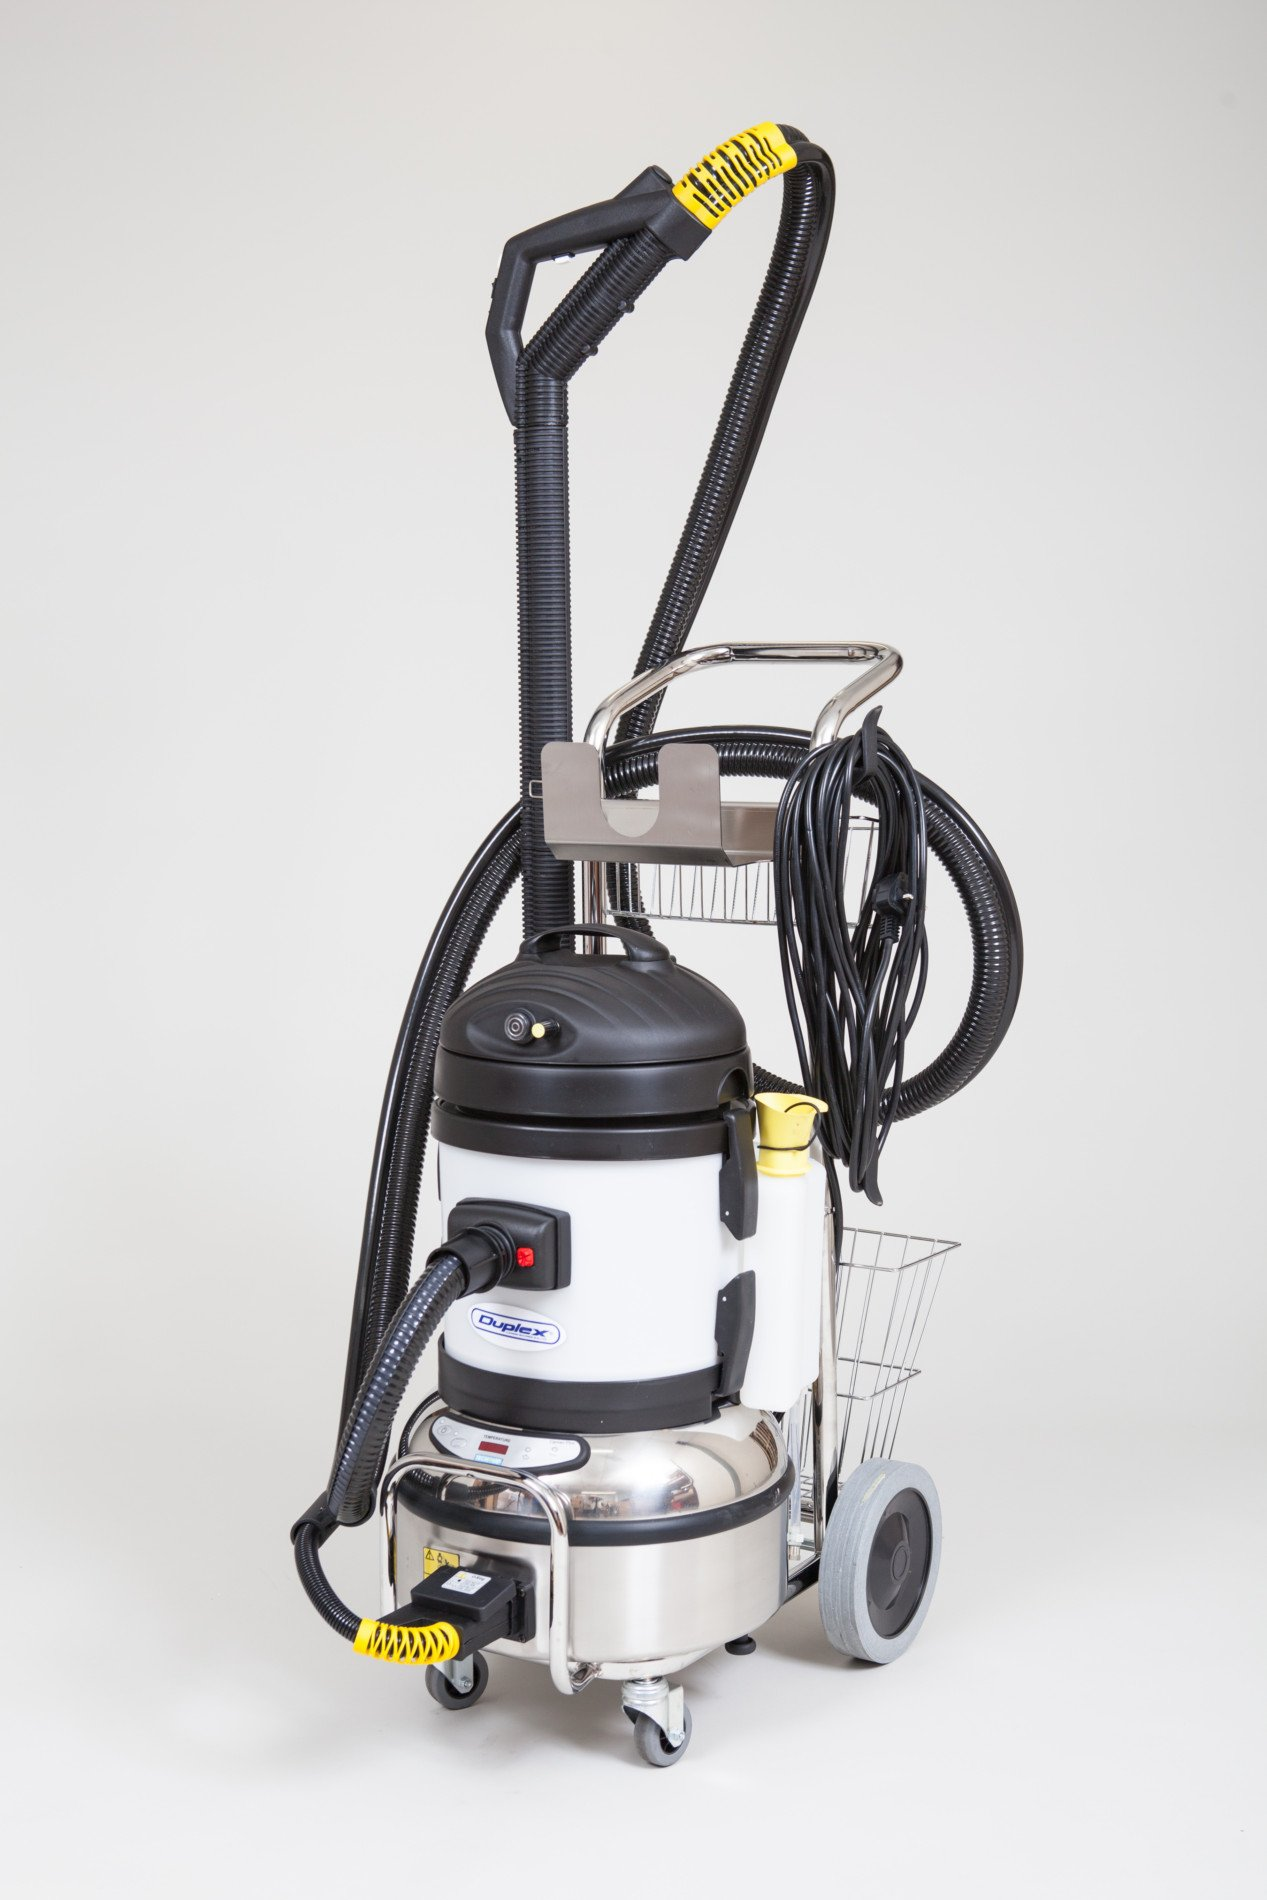 steam cleaners steam cleaner reviews jet vac ultima. Black Bedroom Furniture Sets. Home Design Ideas